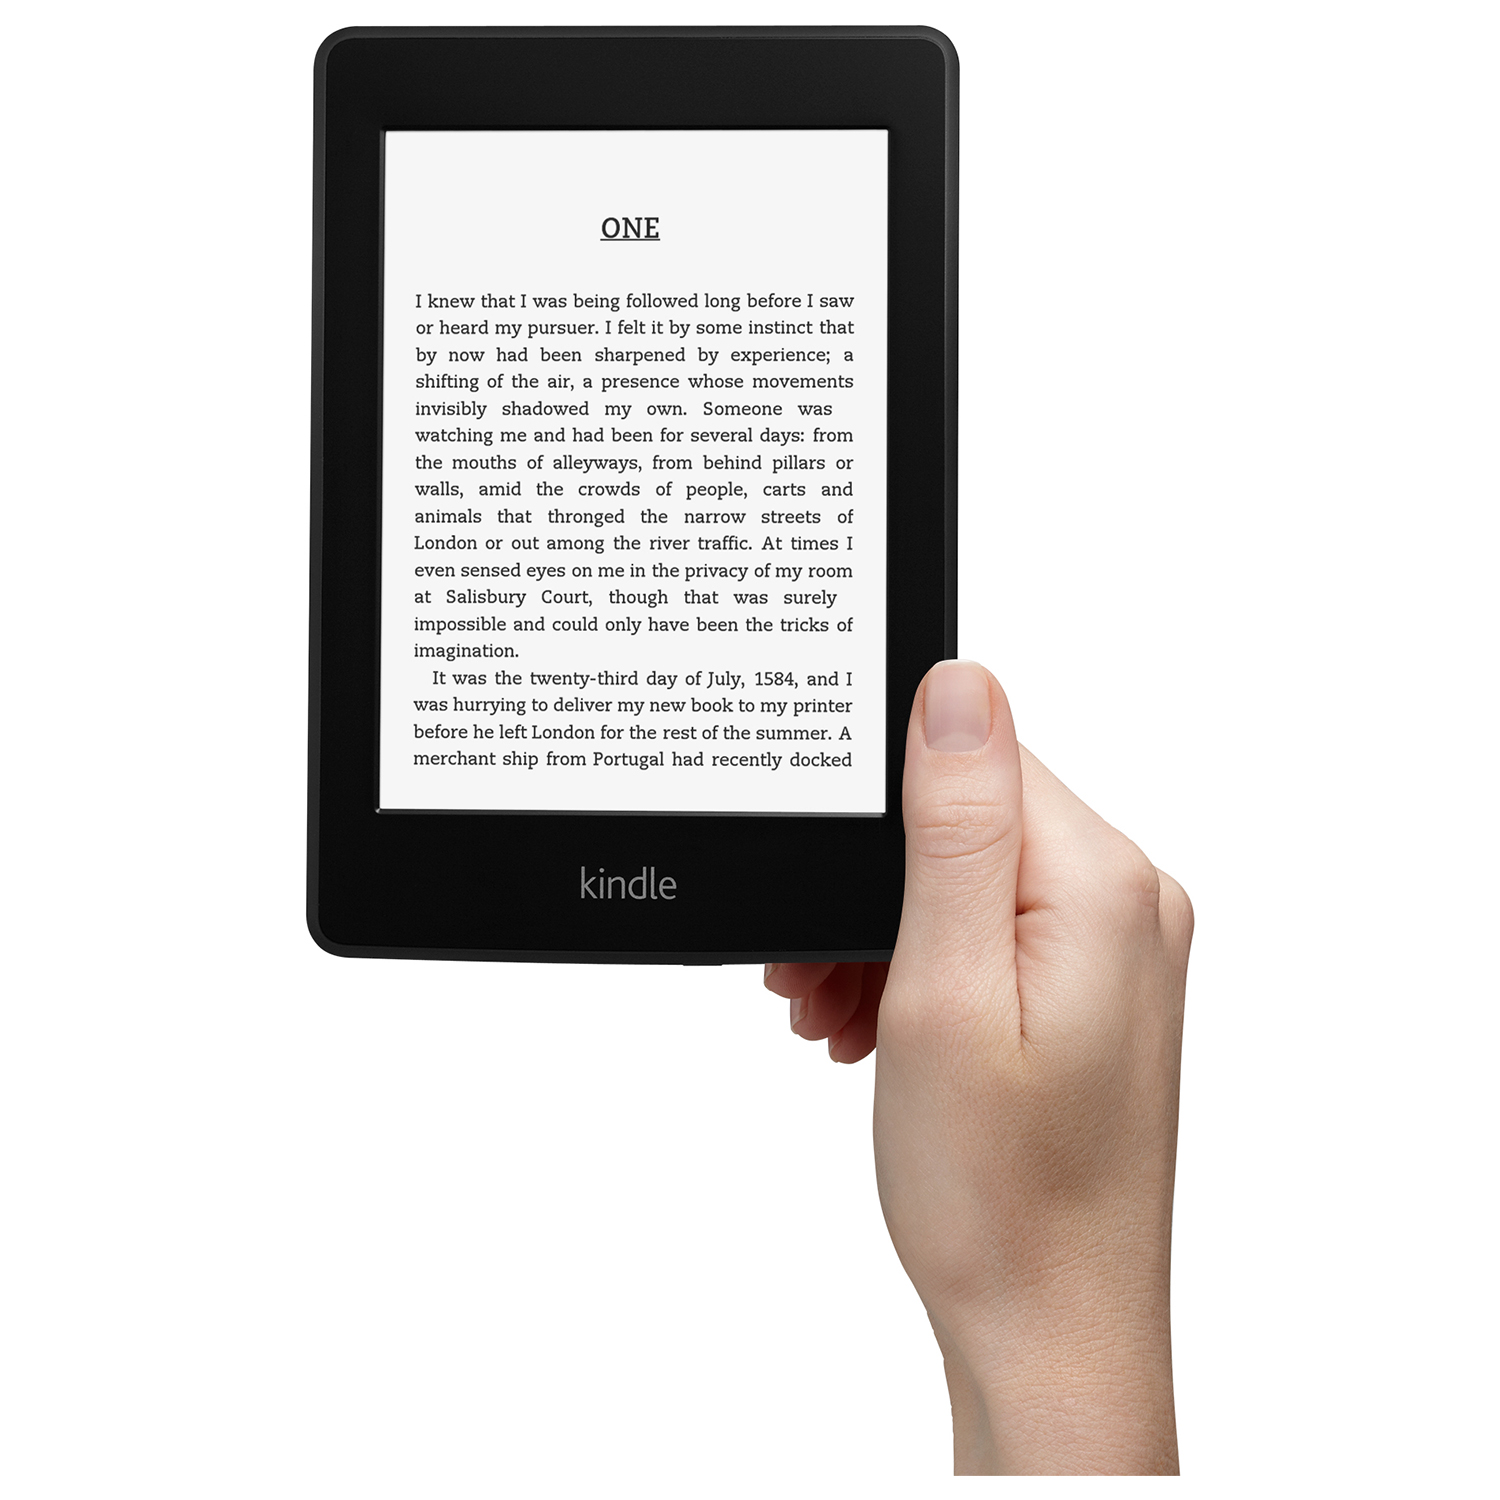 kindle paperwhite 6 high resolution display built in. Black Bedroom Furniture Sets. Home Design Ideas